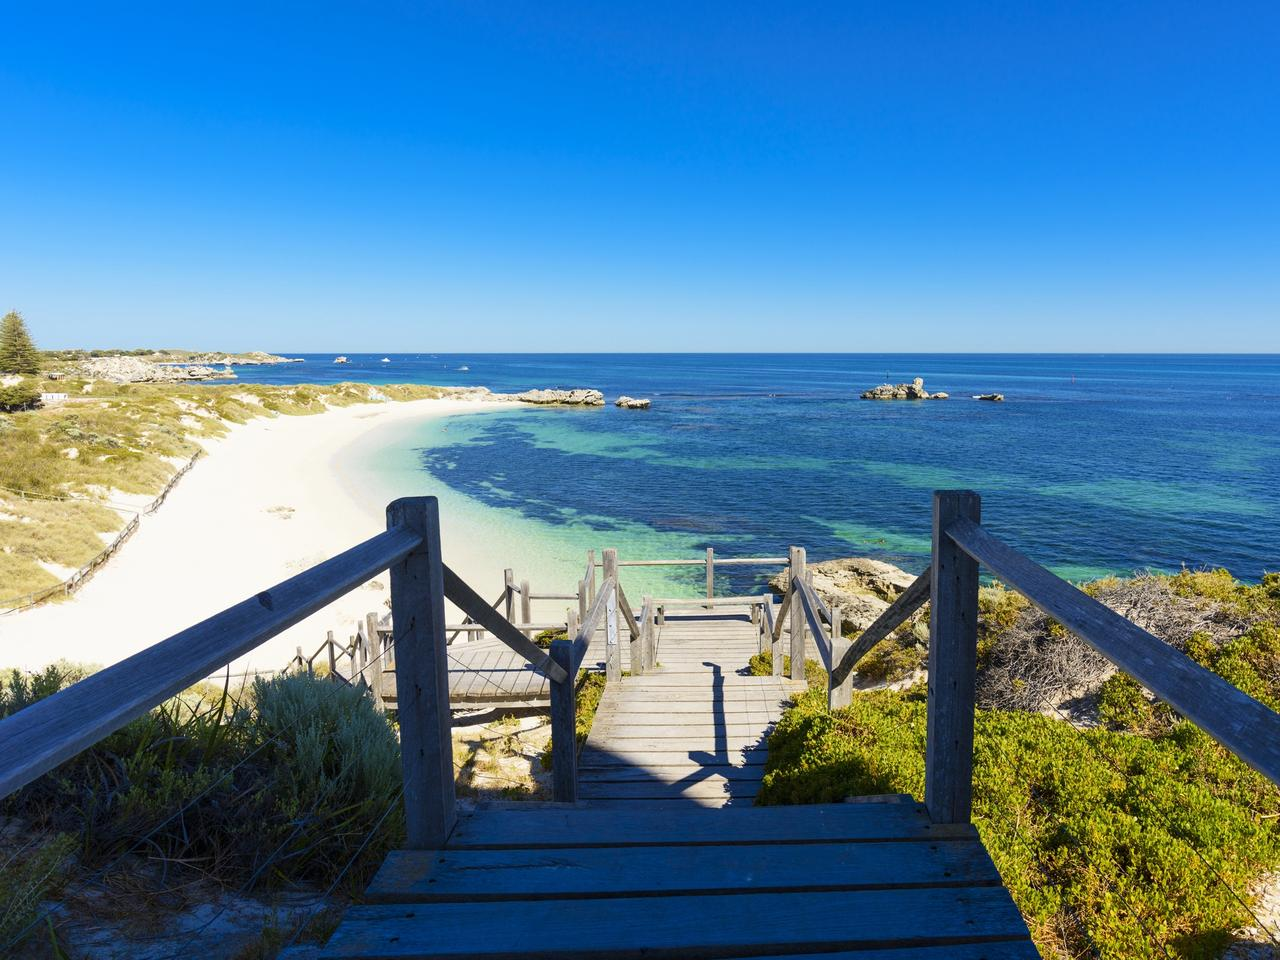 Dreamy Bay, white beach and rocks, island in Indian Ocean, Rottnest Island, Australia, Western Australia, Down Under